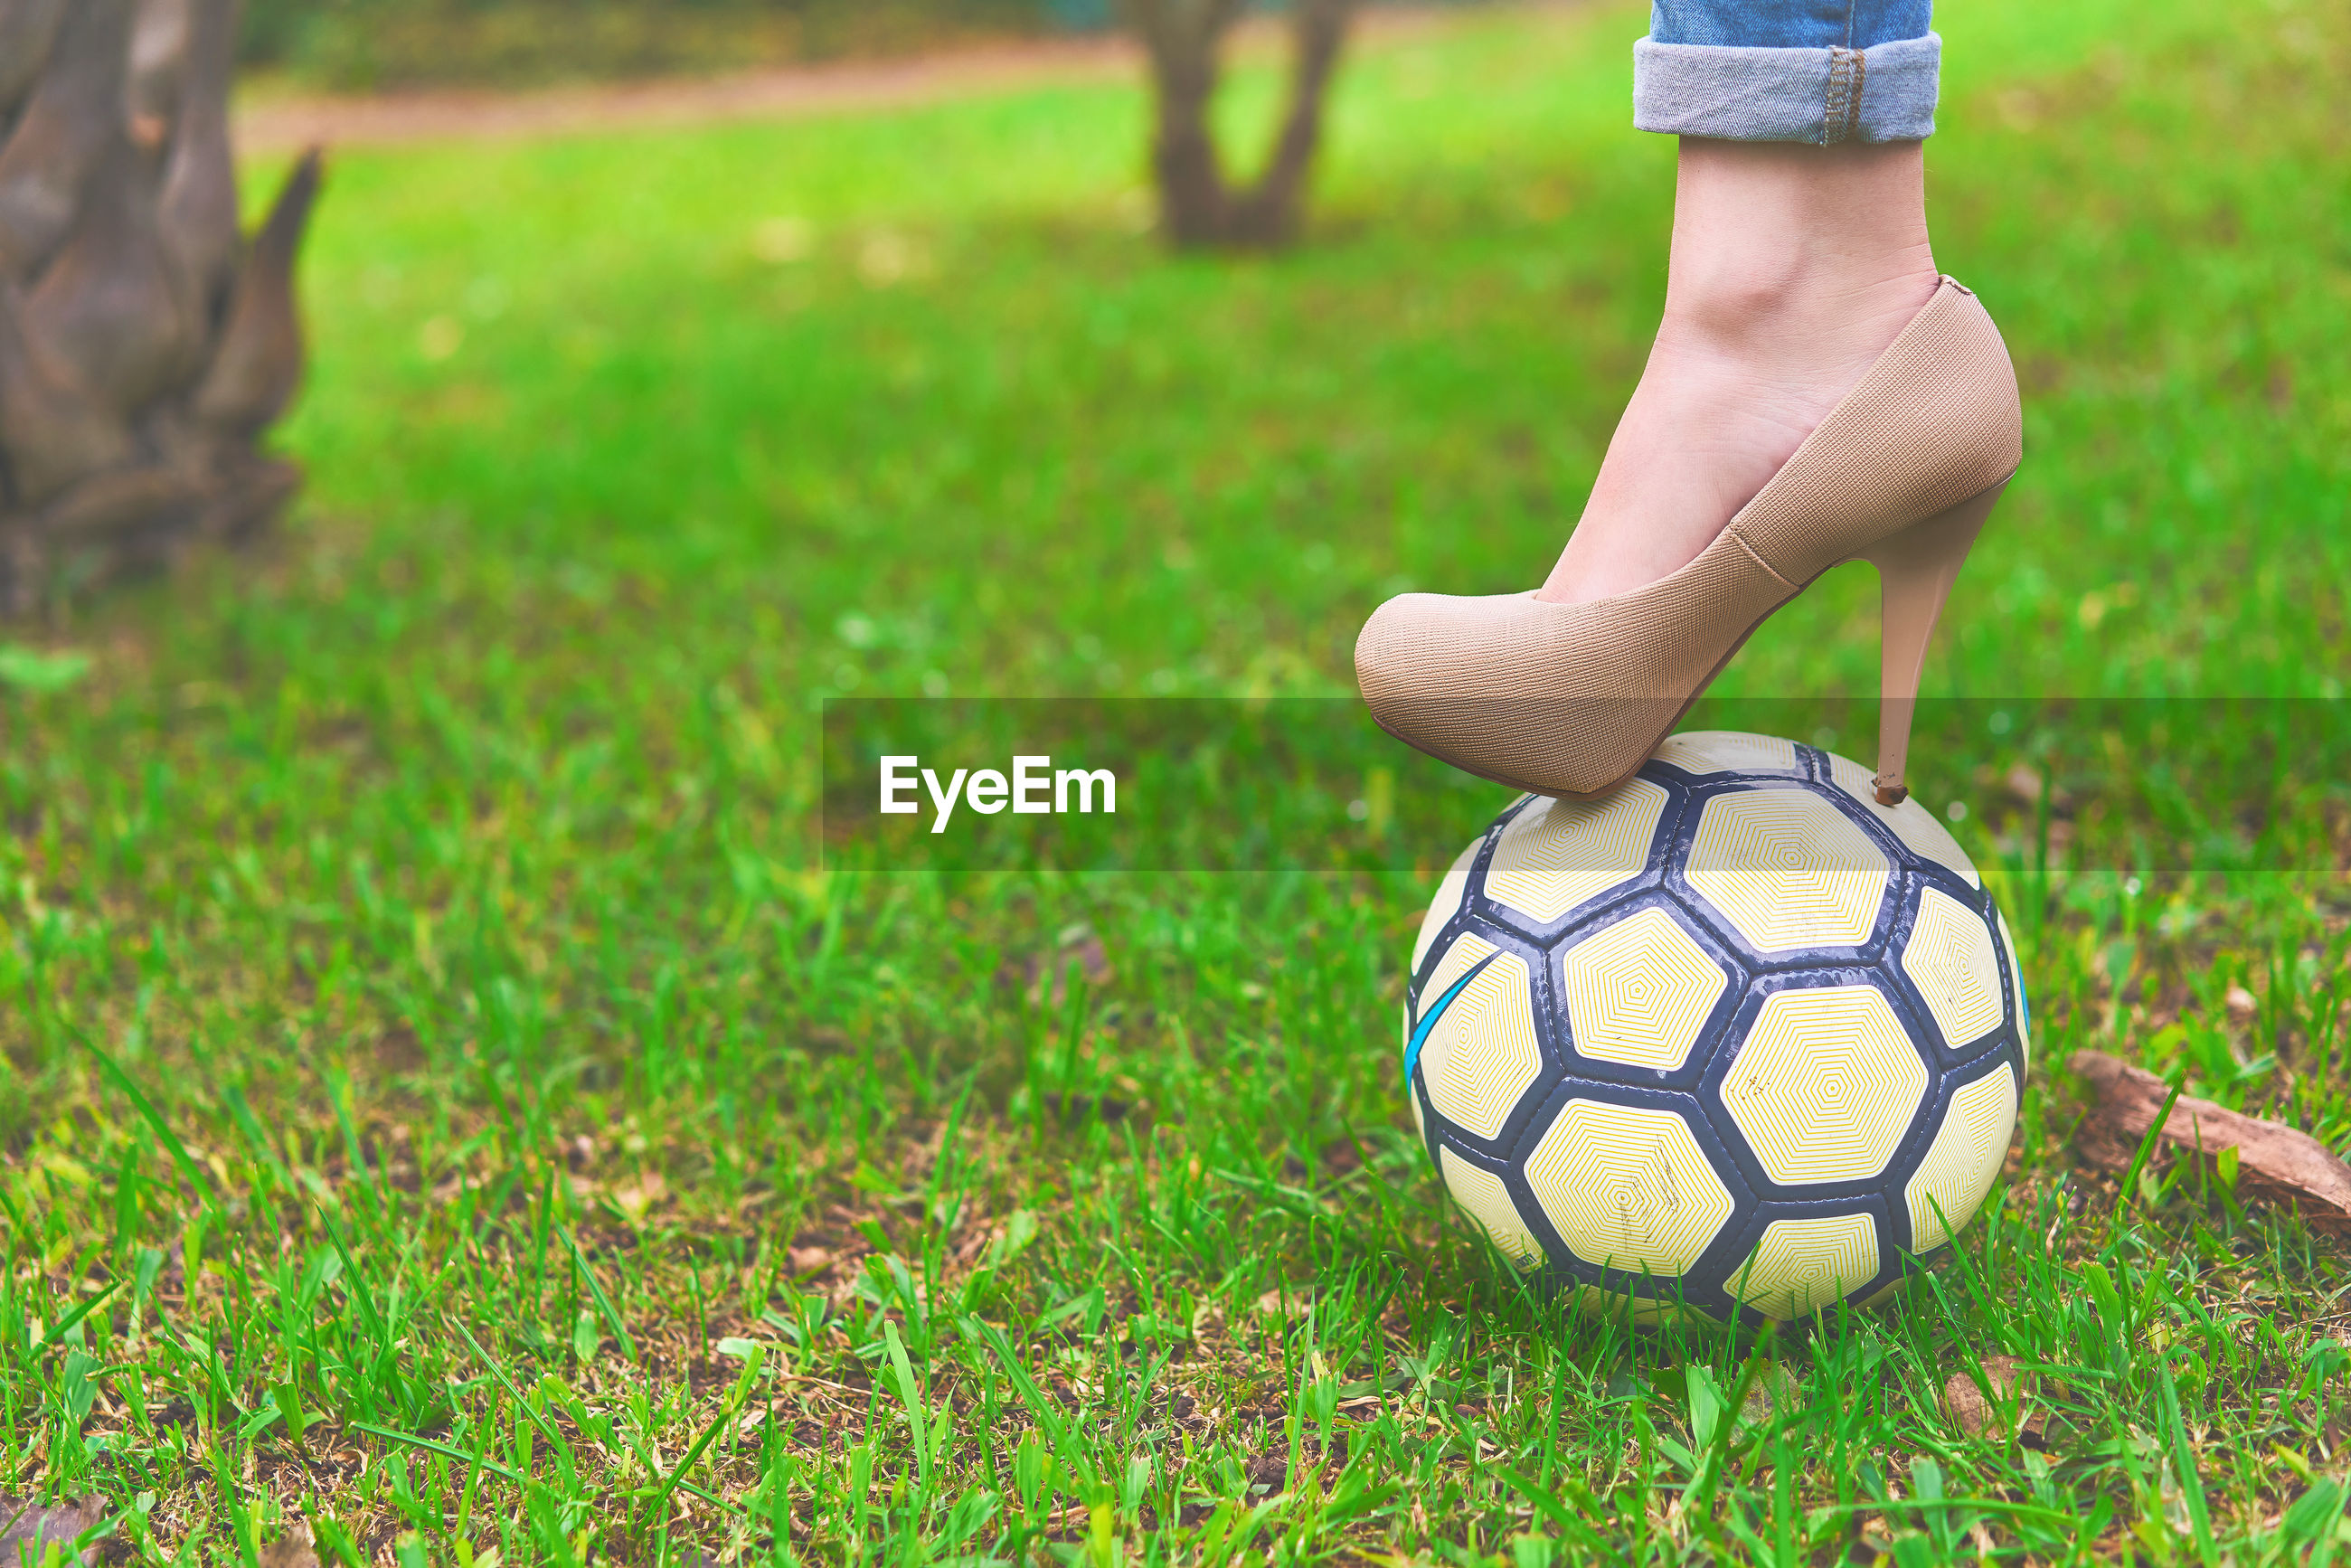 Low section of woman standing on soccer ball over grassy field